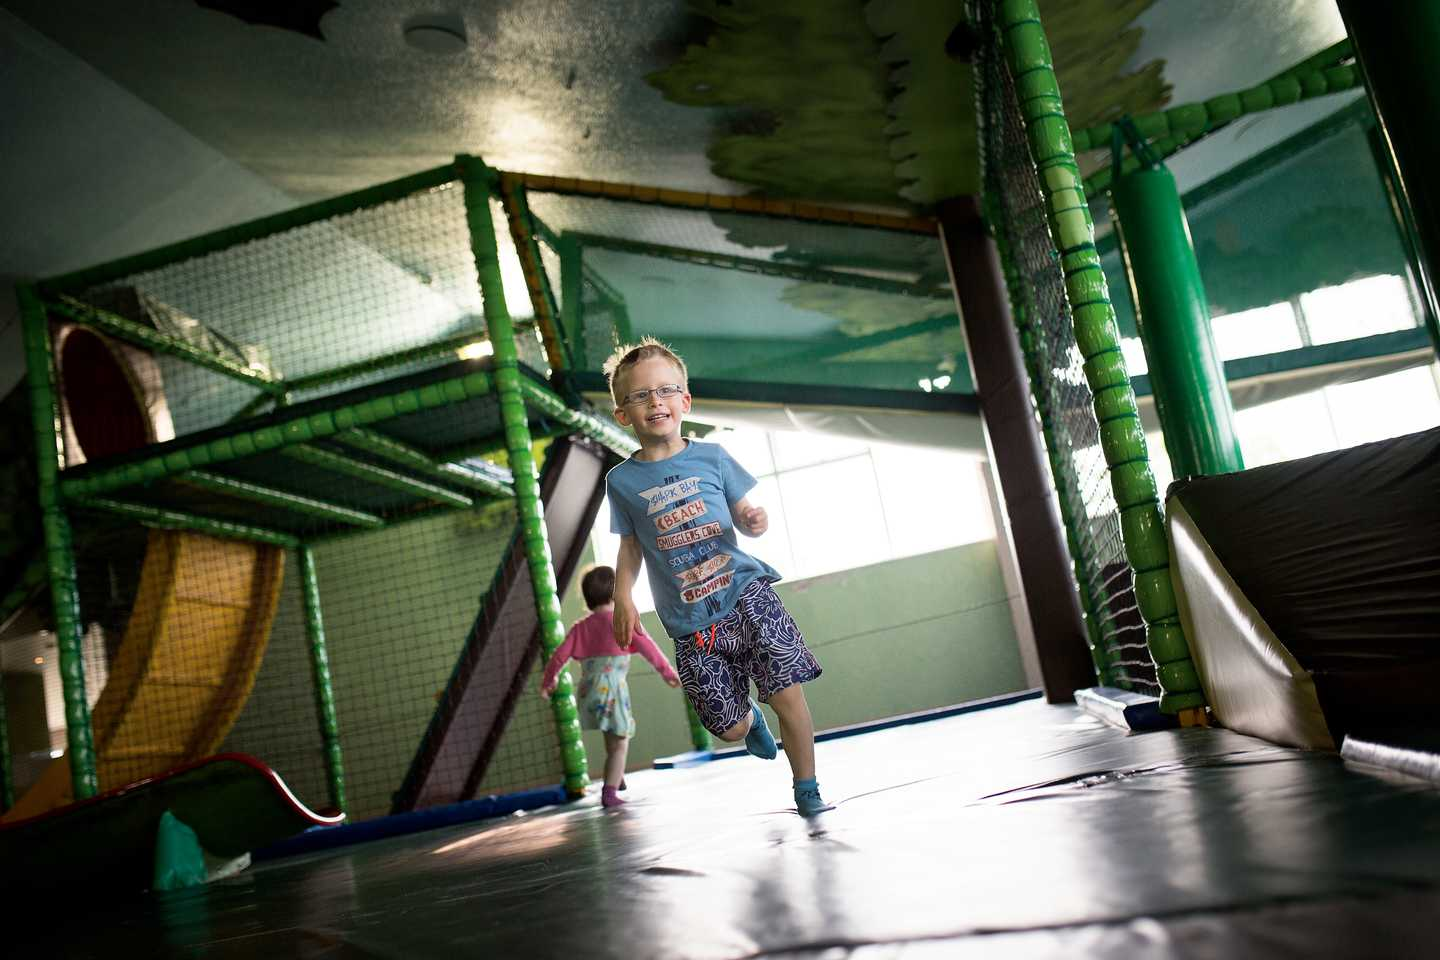 A child running through the indoor play area